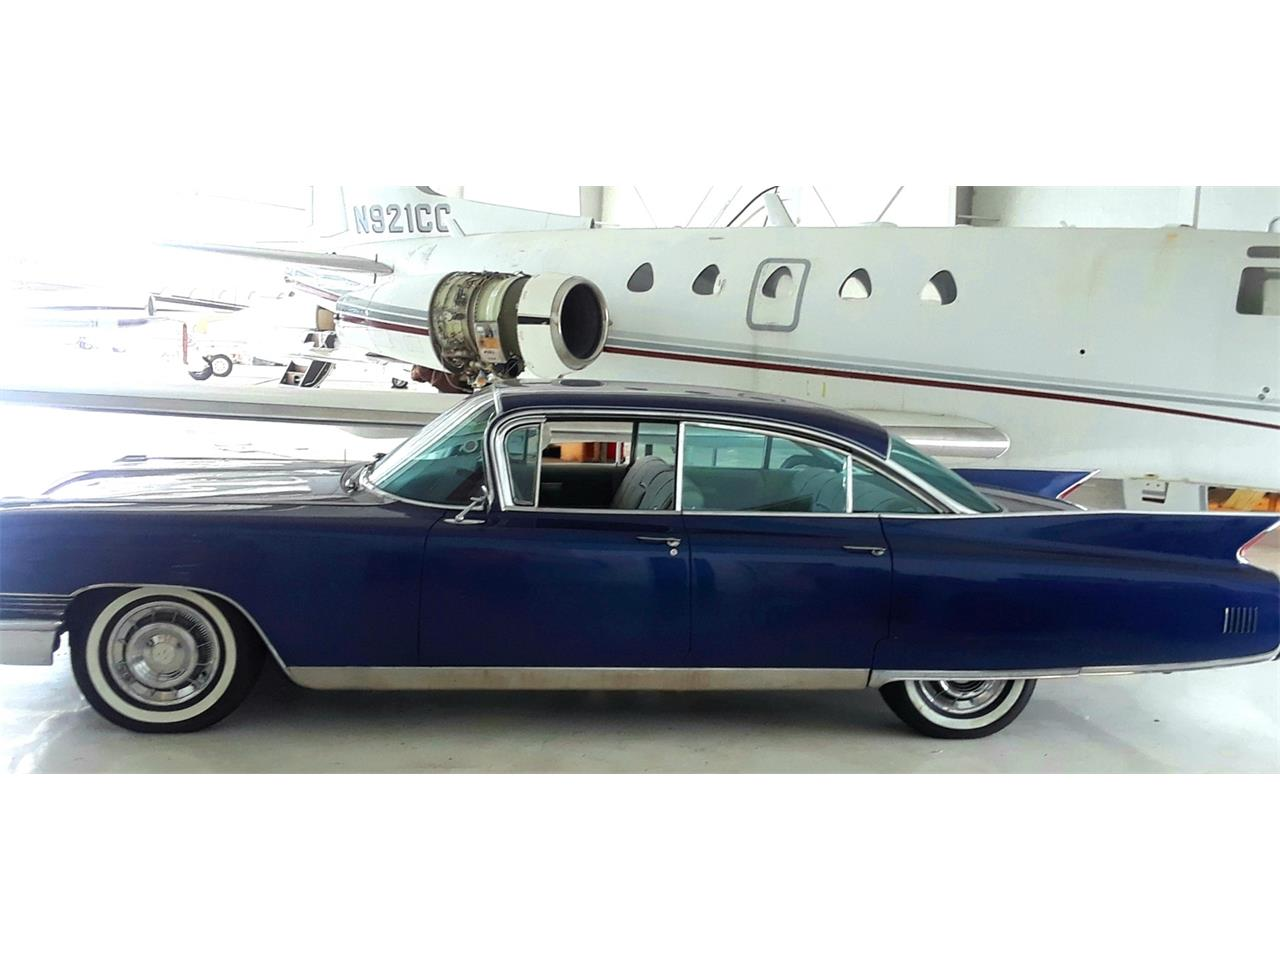 For Sale: 1960 Cadillac Fleetwood 60 Special in Miami Lakes, Florida